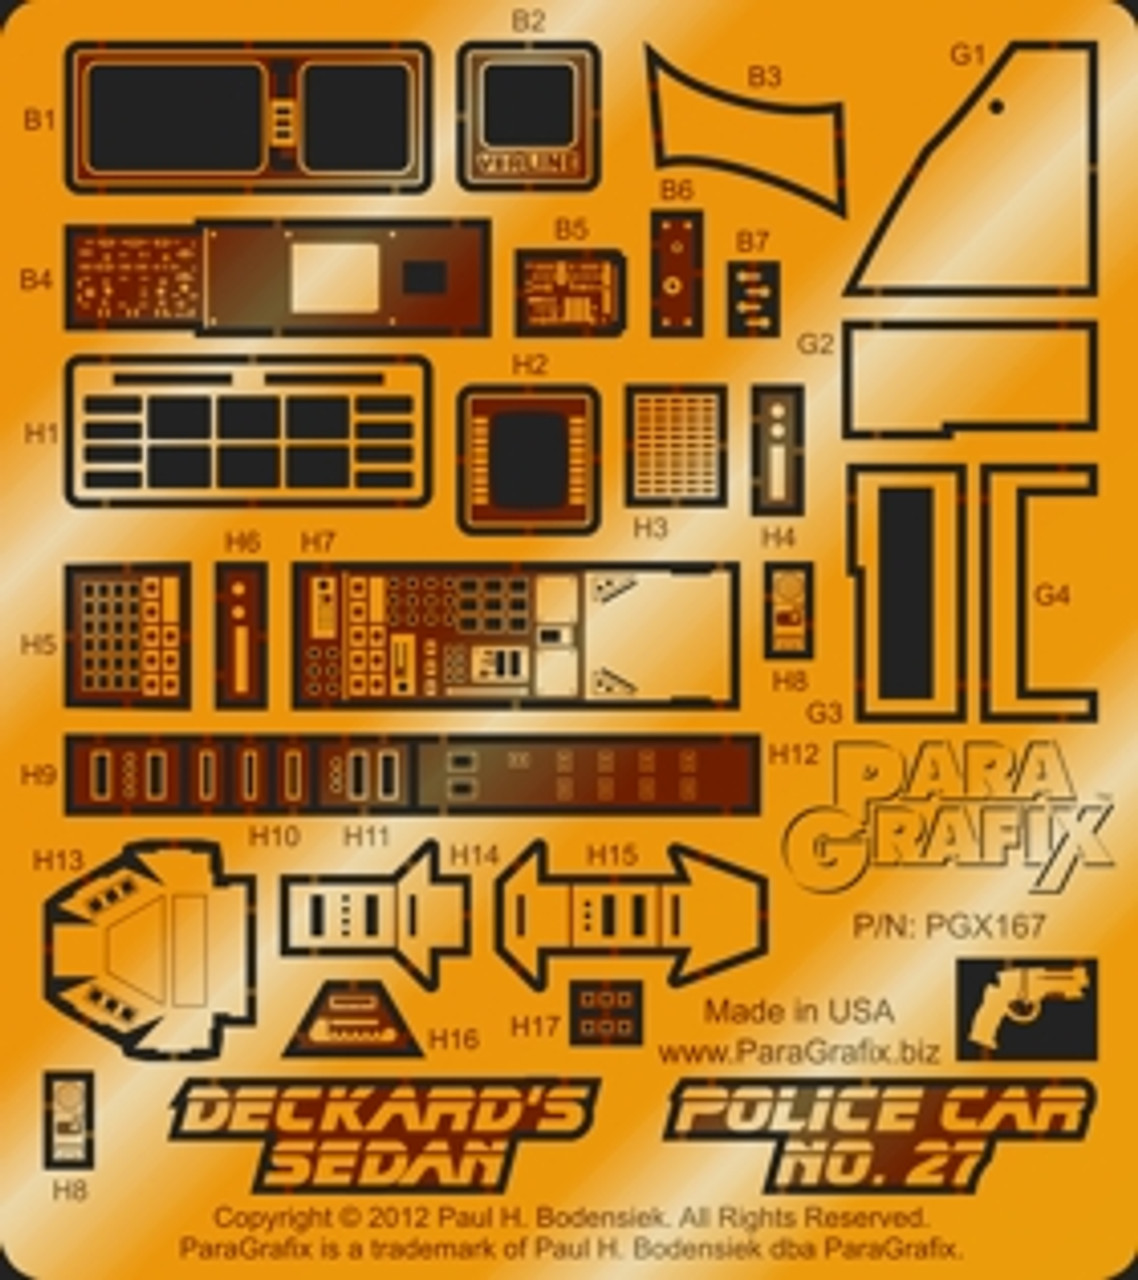 Paragrafix PGX167 Deckard's Sedan / Police Car No. 27 Photoetch Set